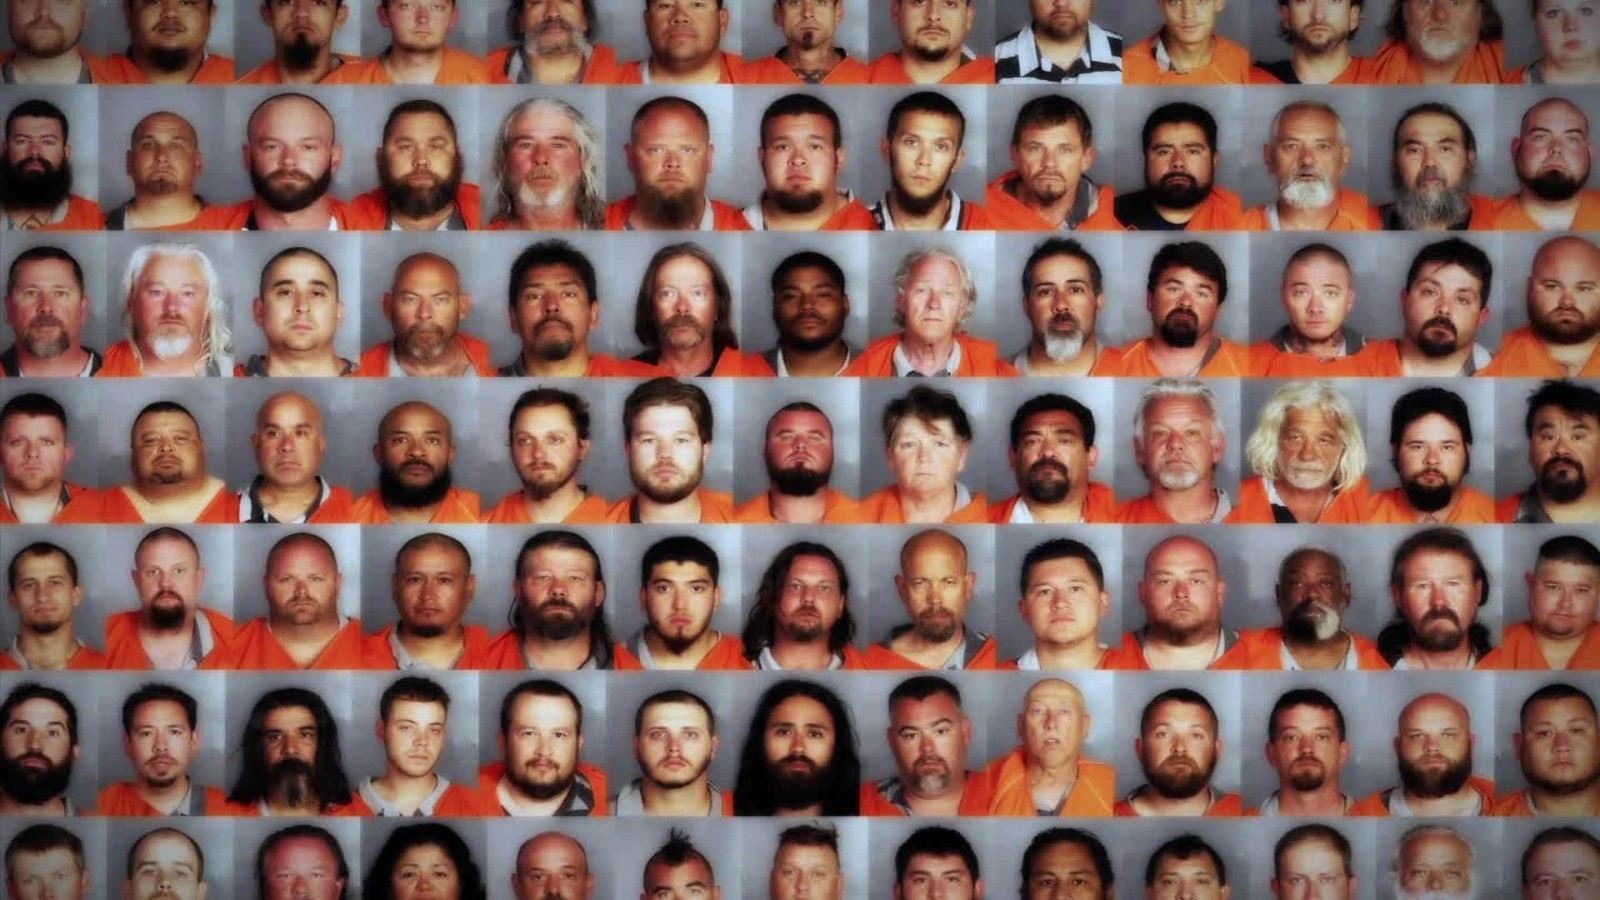 Waco biker shootout caught on camera - CNN Video